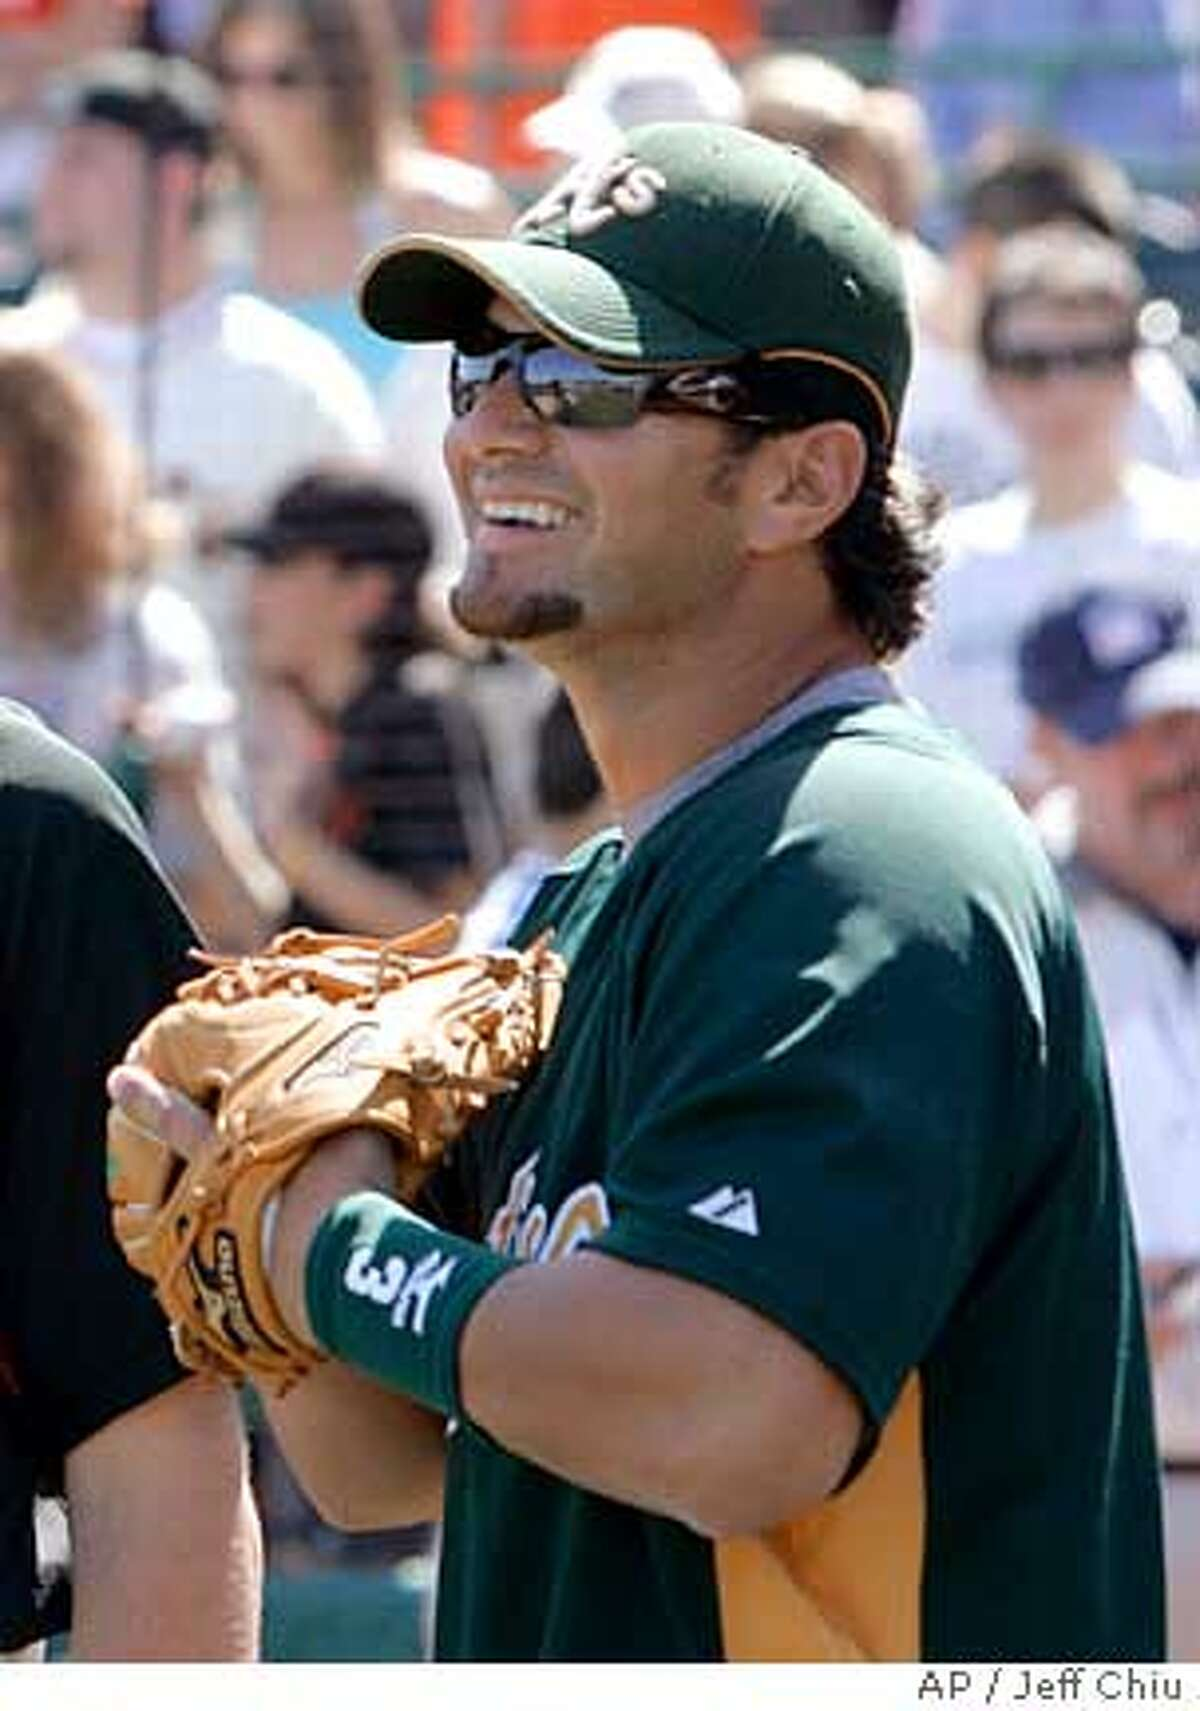 San Francisco Giants pitcher Barry Zito, left, talks with Oakland Athletics' Eric Chavez before the two teams played in a spring training baseball game in Scottsdale, Ariz., Friday, March 9, 2007. (AP Photo/Jeff Chiu)